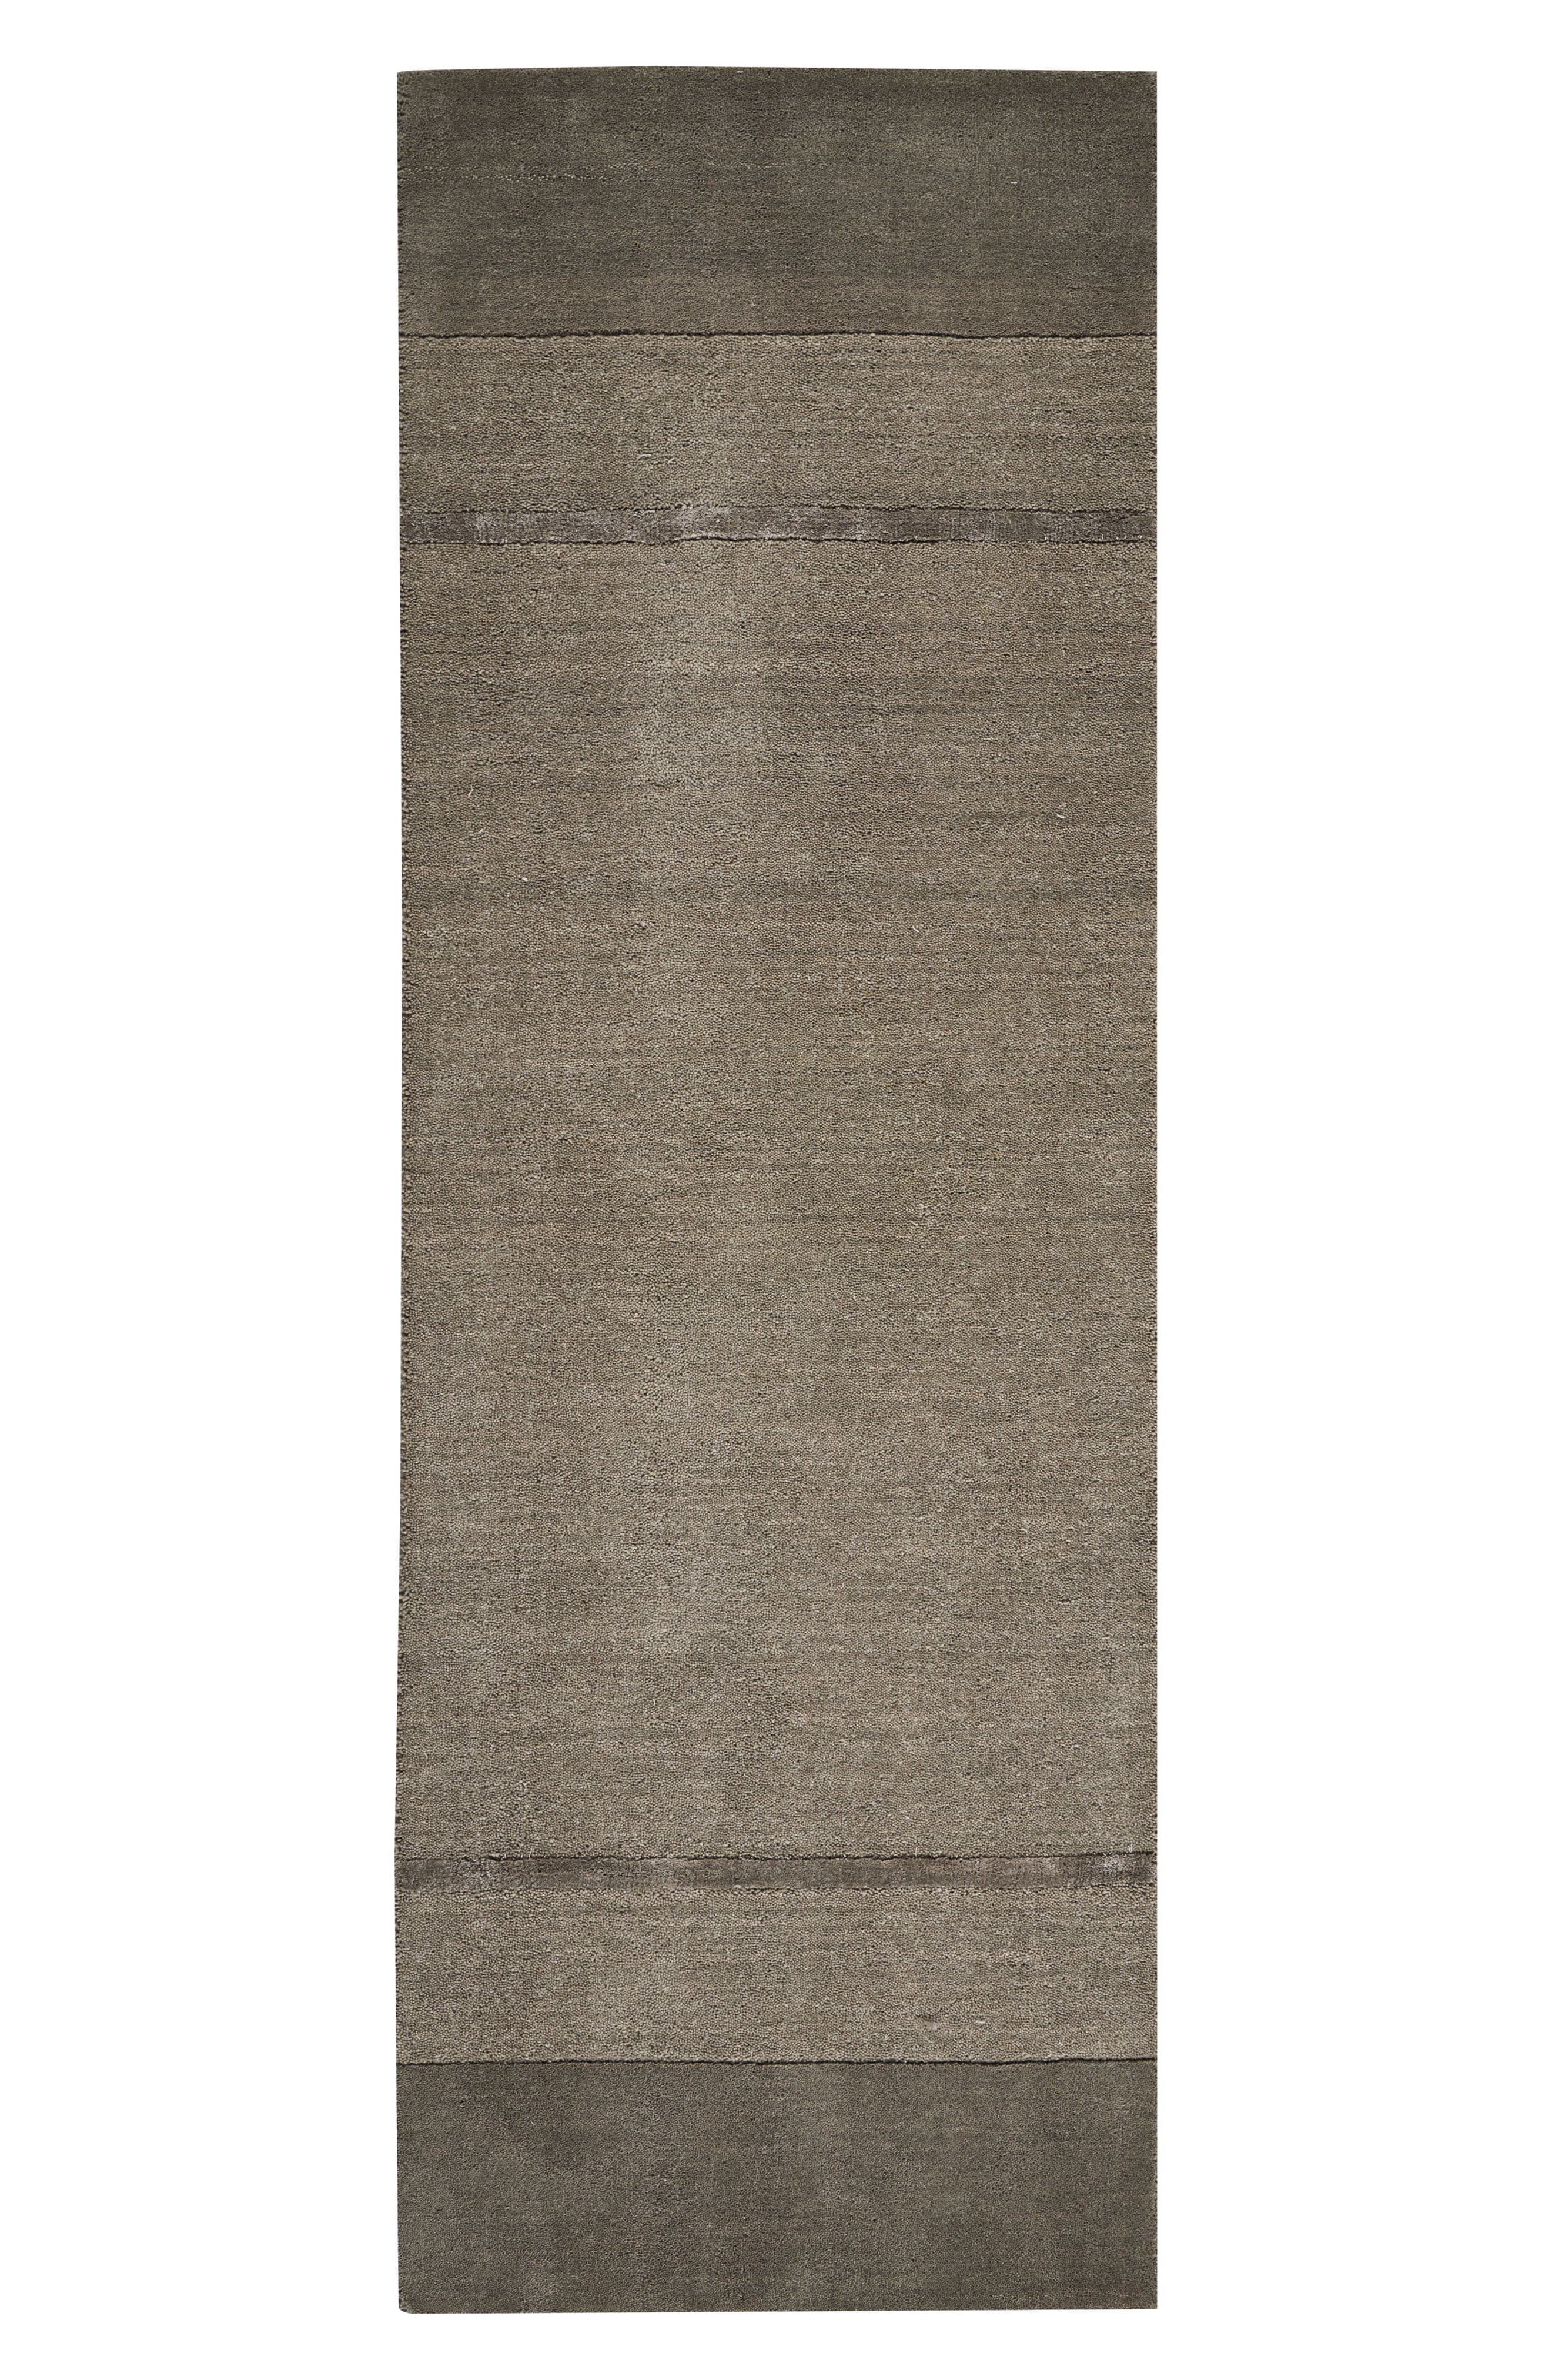 Vale Handwoven Area Rug,                             Alternate thumbnail 3, color,                             020